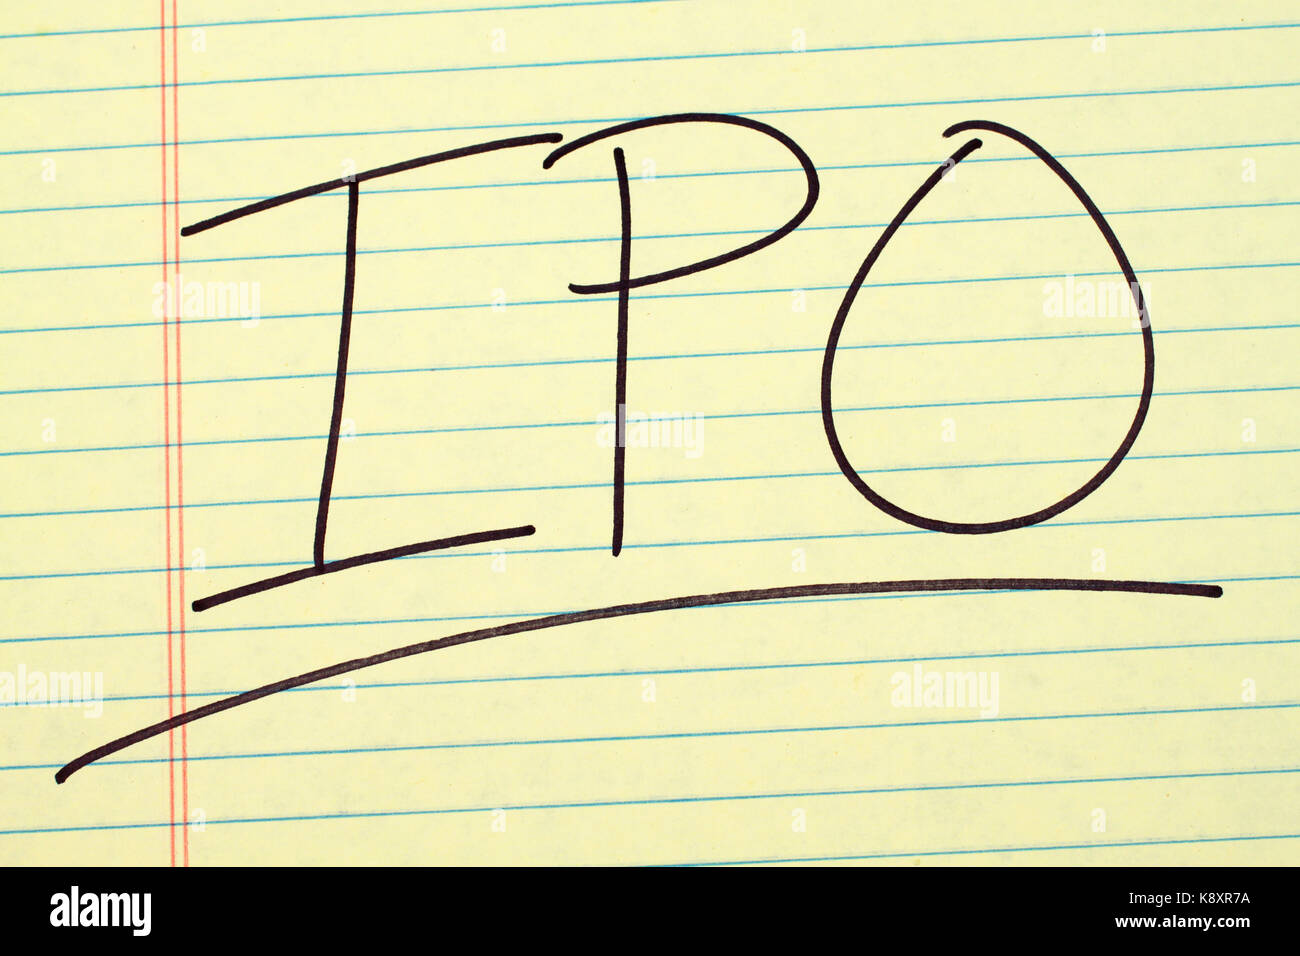 The word 'IPO' underlined on a yellow legal pad - Stock Image